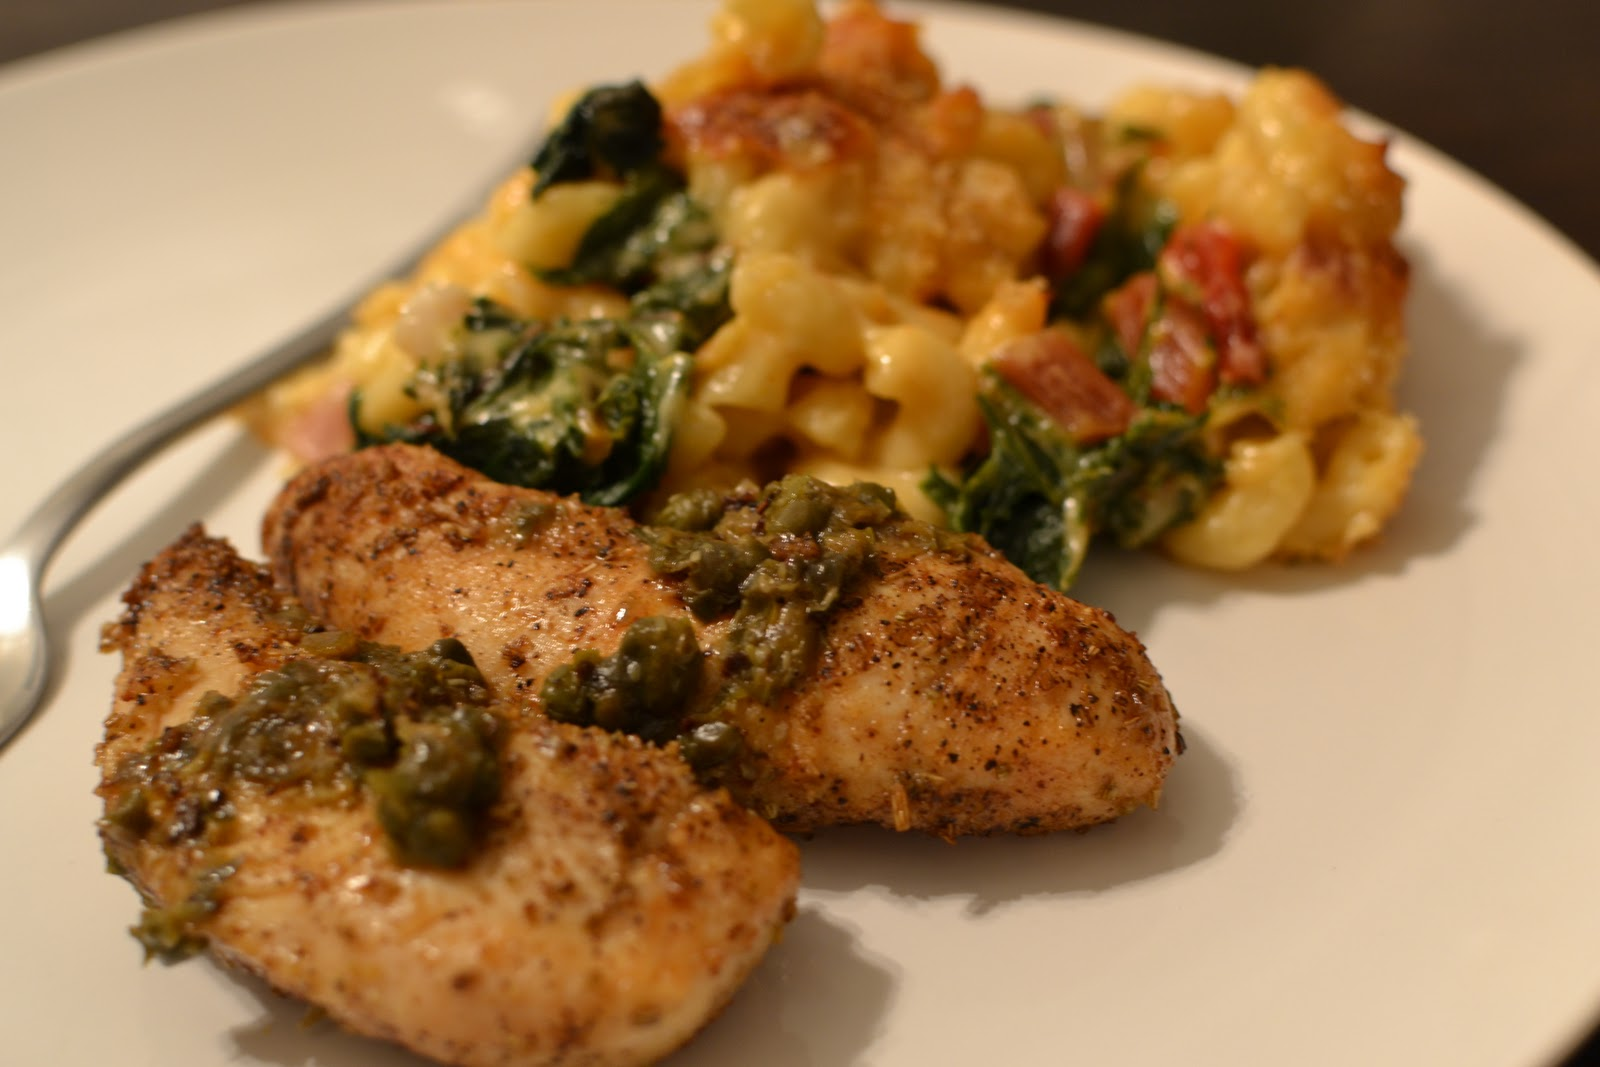 emcSquared: week 1 - chicken with capers